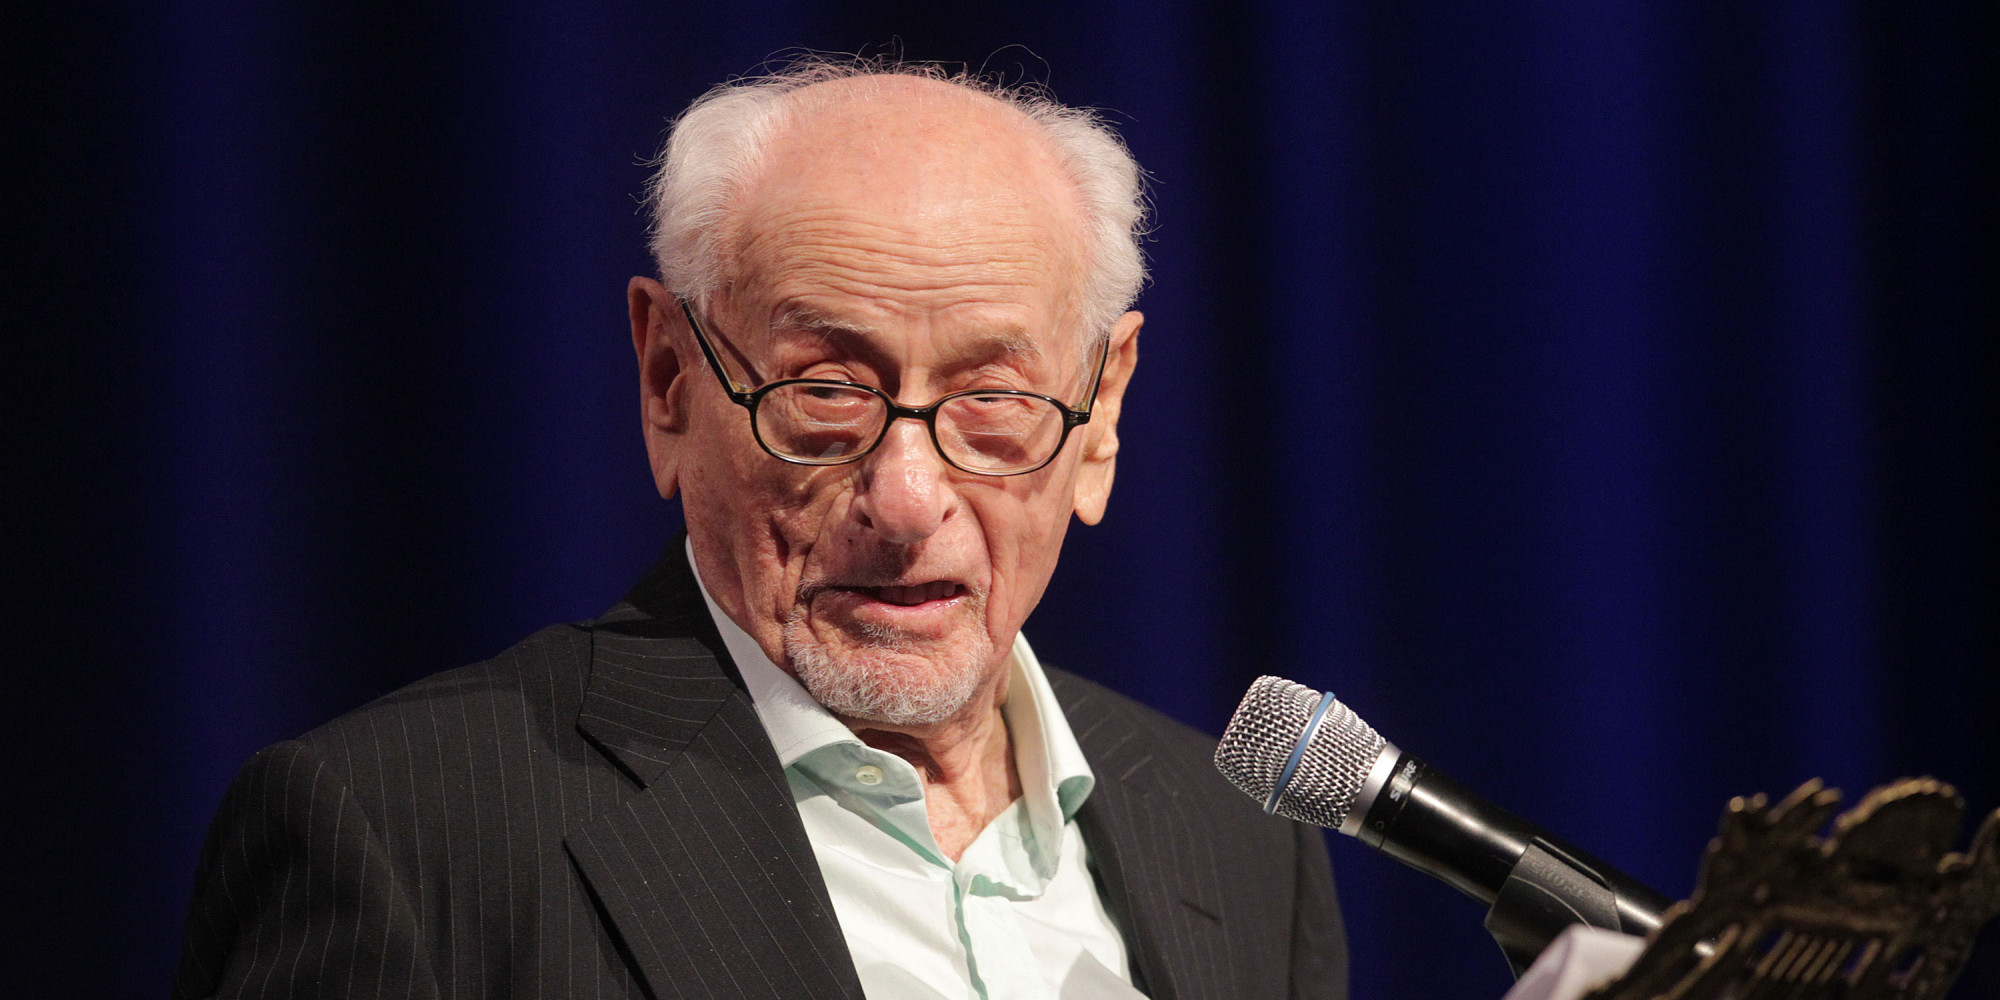 LOS ANGELES, CA - NOVEMBER 14: Actor Eli Wallach speaks during the Museum of Tolerance International Film Festival Gala on November 14, 2010 in Los Angeles, California. (Photo by Frederick M. Brown/Getty Images)